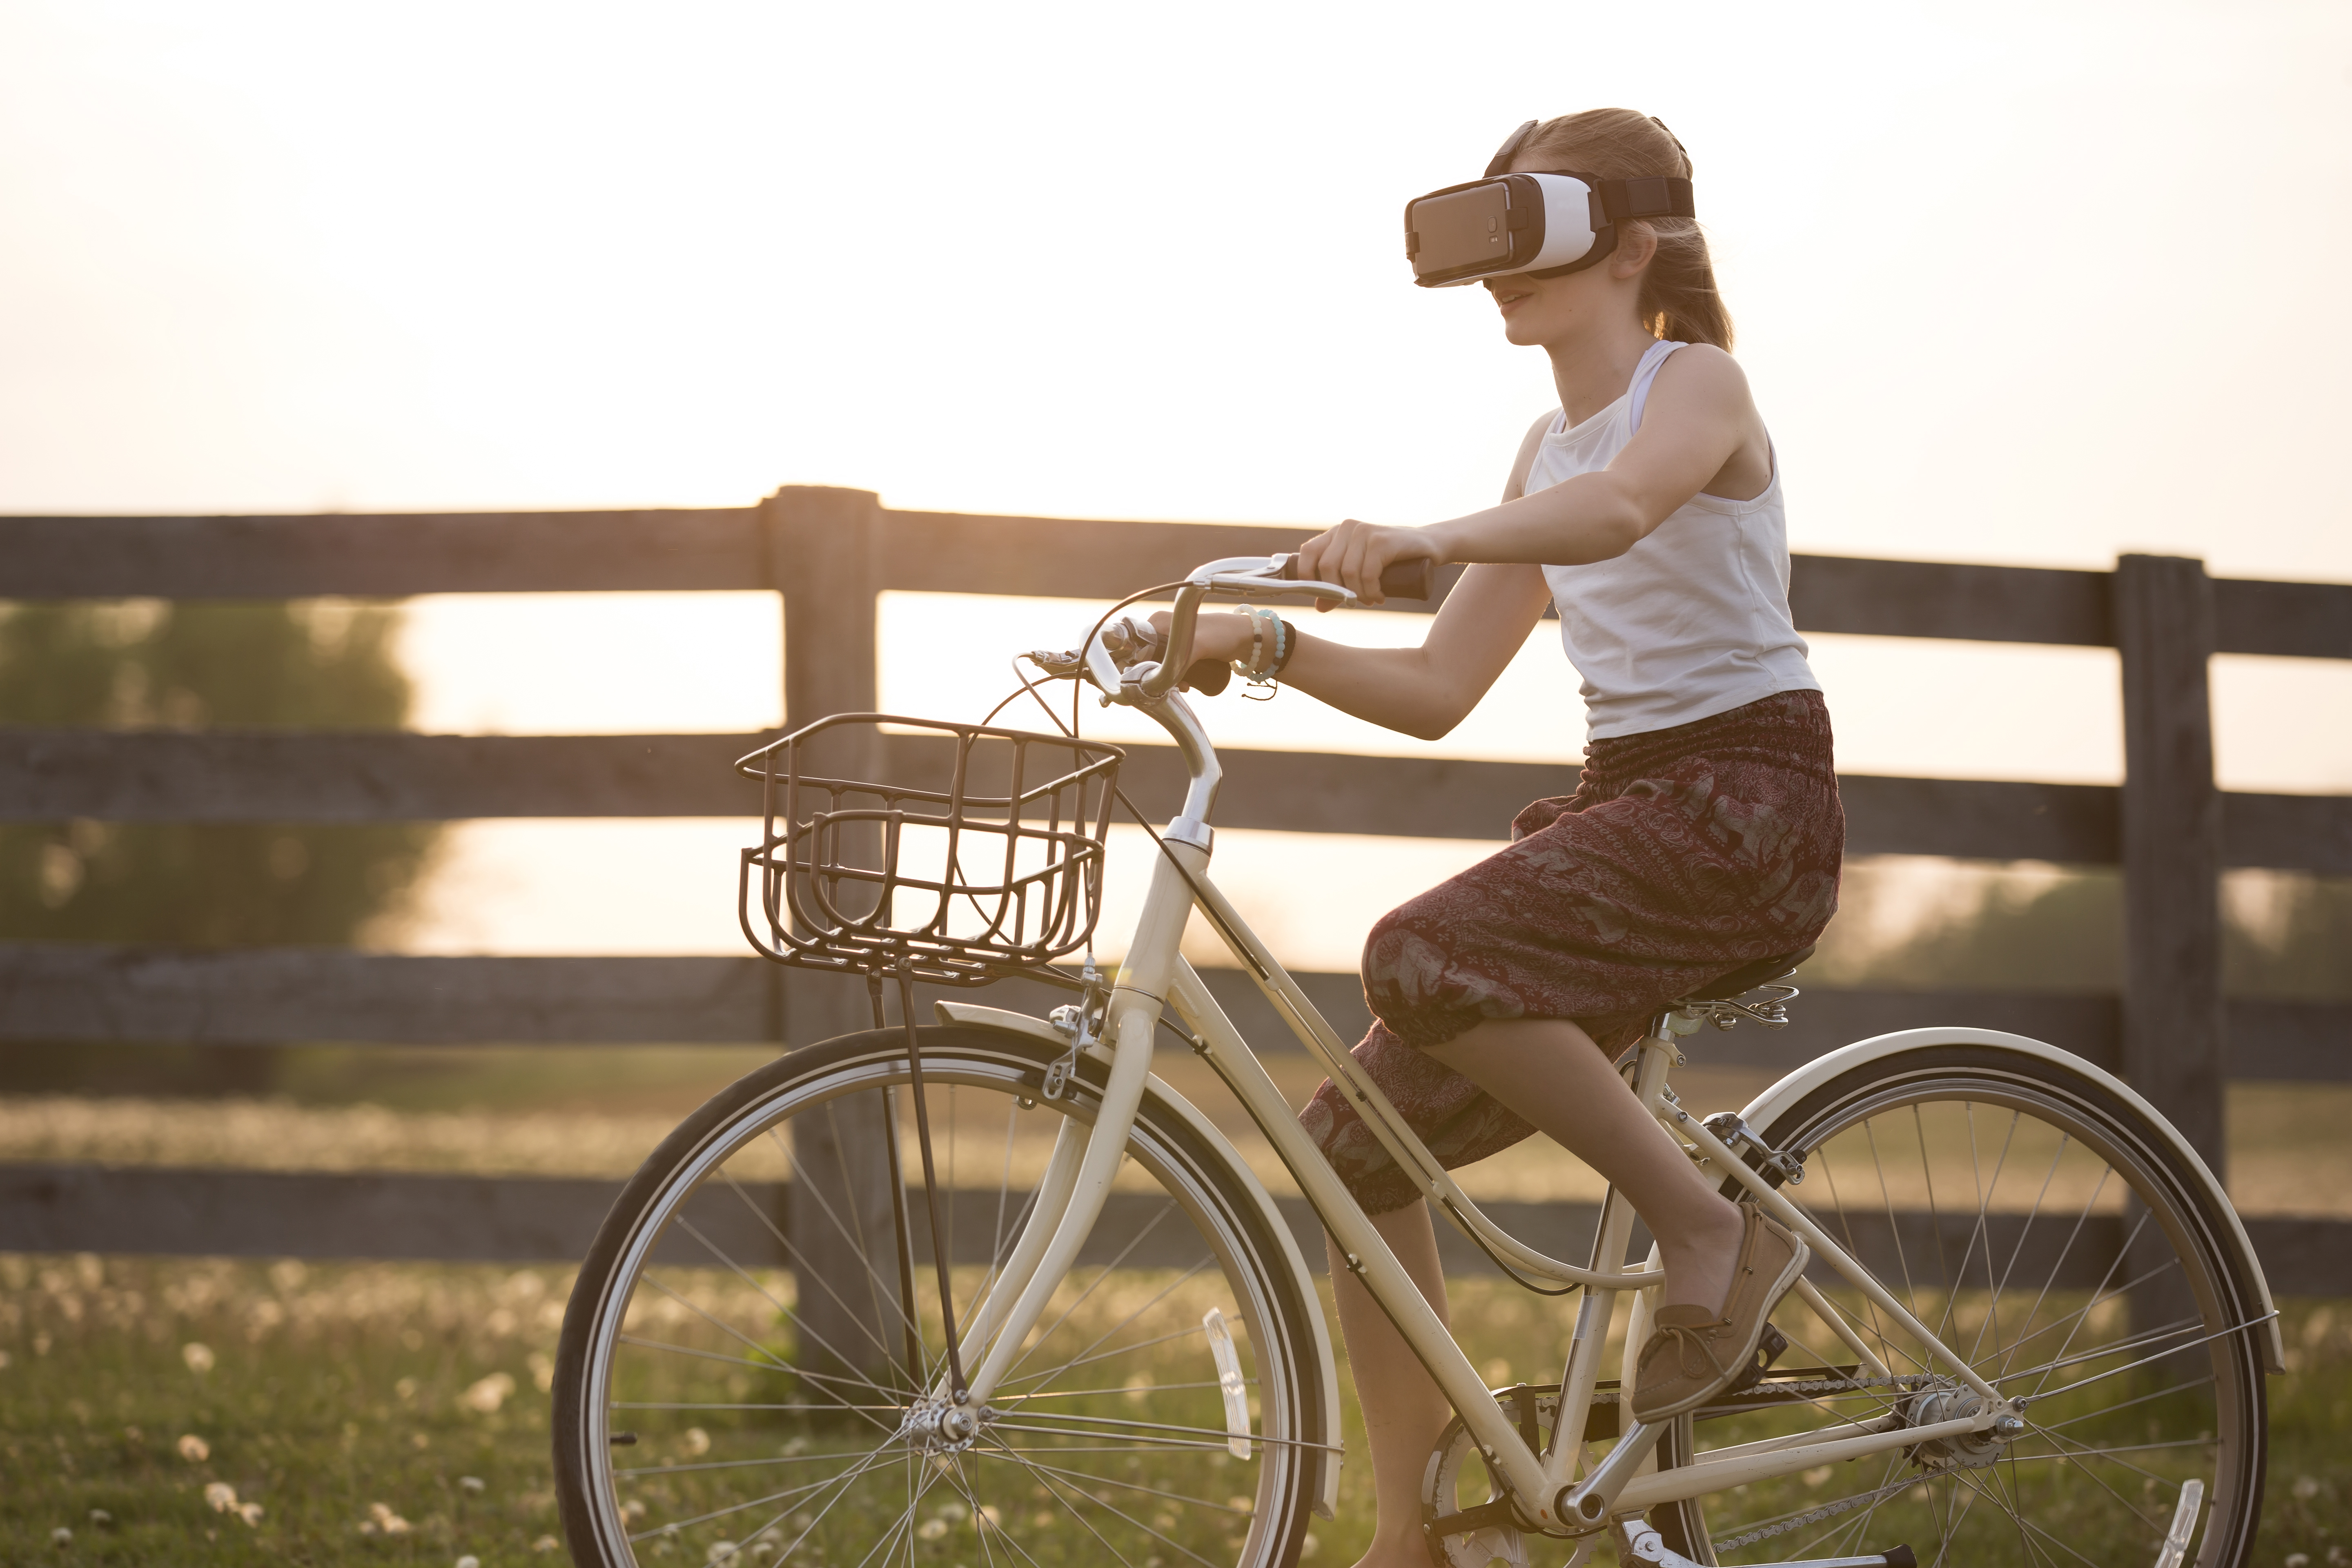 Ways in Which VR Can Influence Our Lives - Image 1